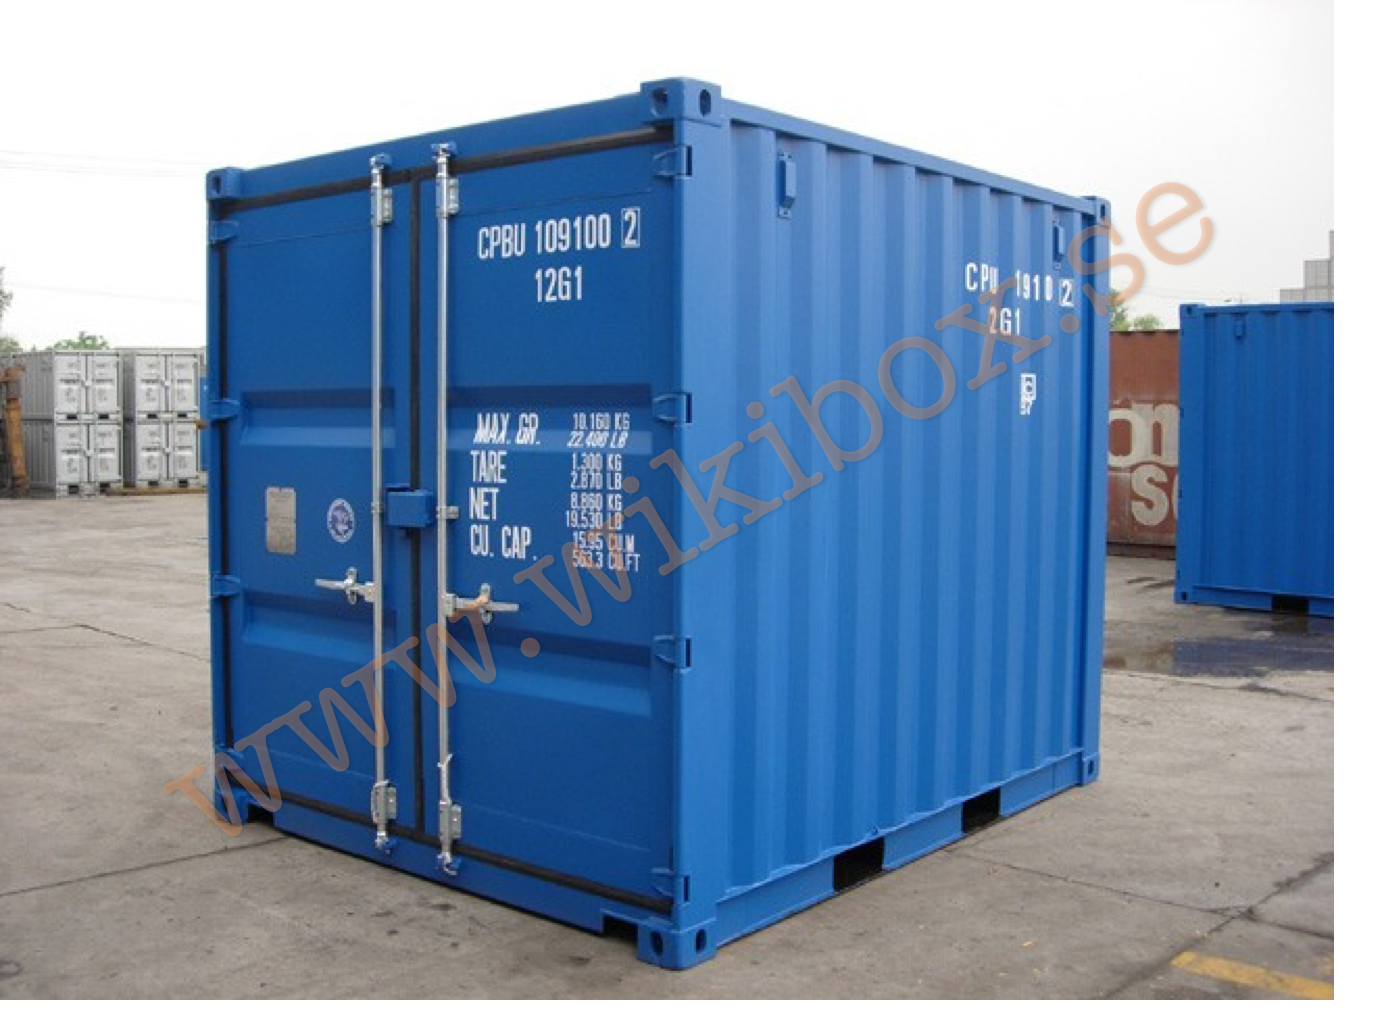 6ft container